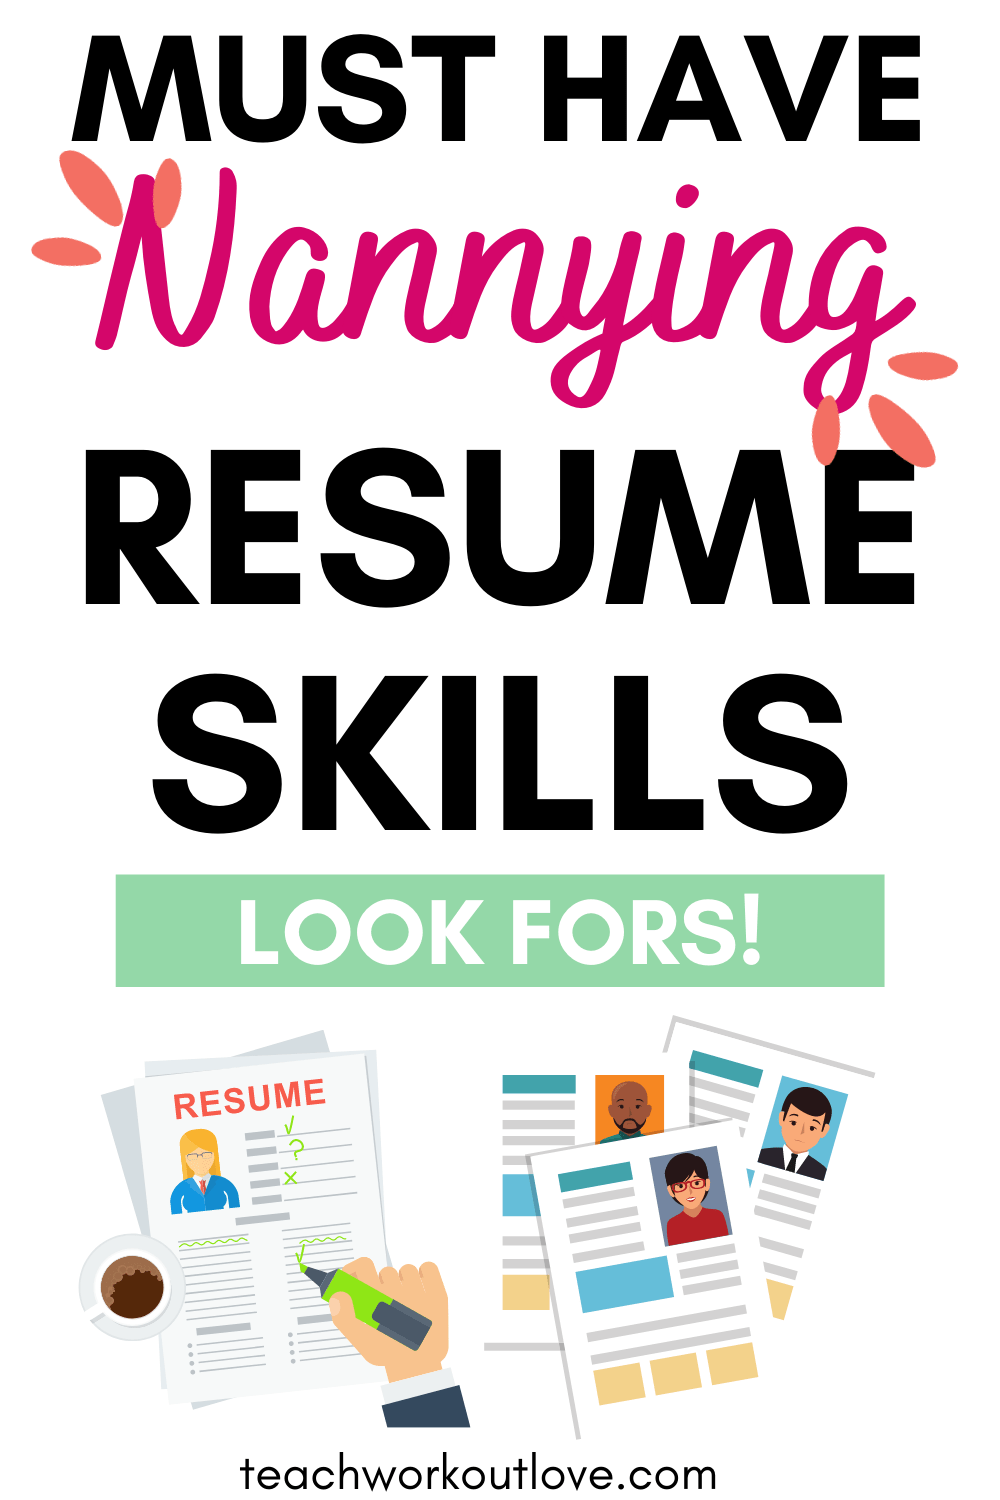 Need some nannying resume tips? Here are the top 10 skills to look for on nannies' resumes before even having an interview.